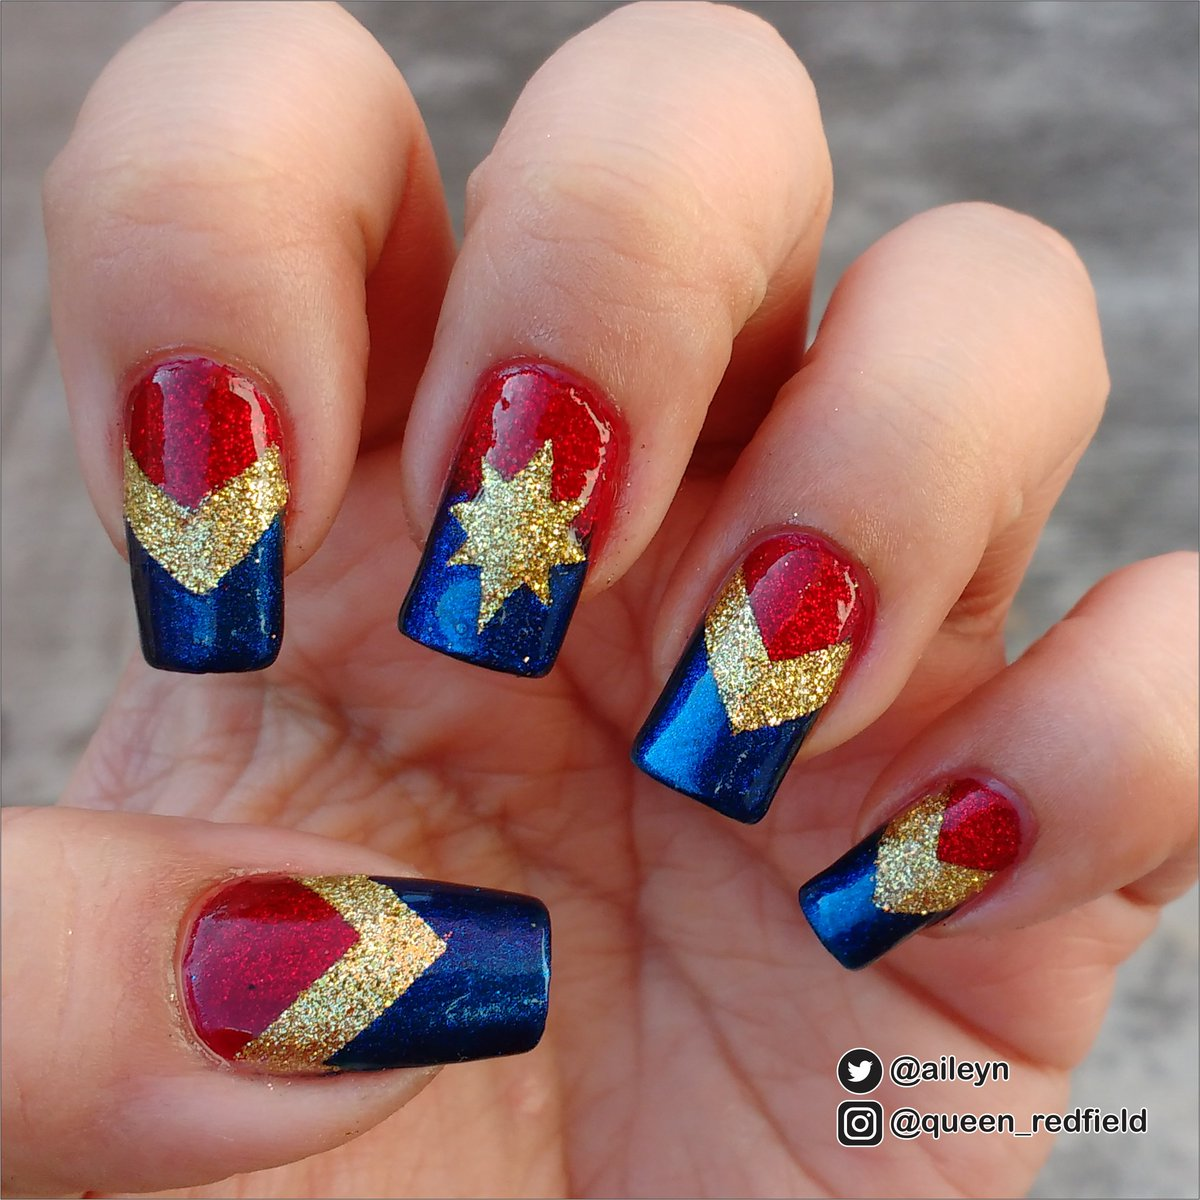 Aileyn On Twitter Time For Some Captainmarvel Nails Using